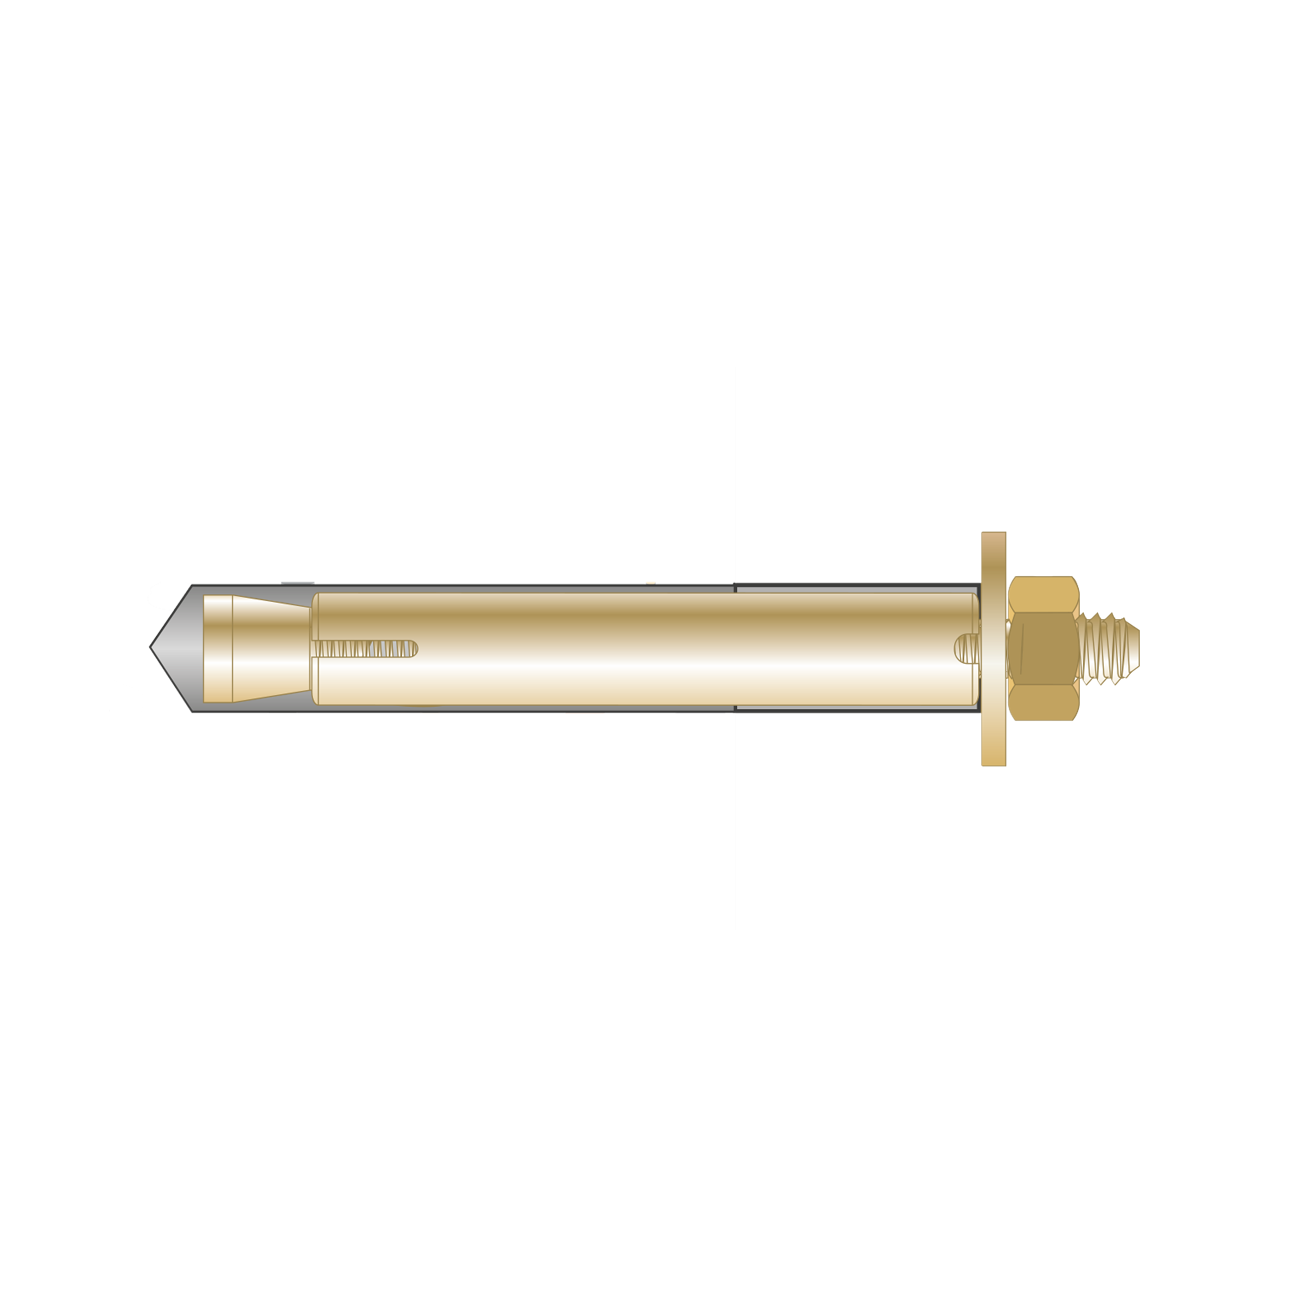 Conexpand Strapung Tip1-m 6×60